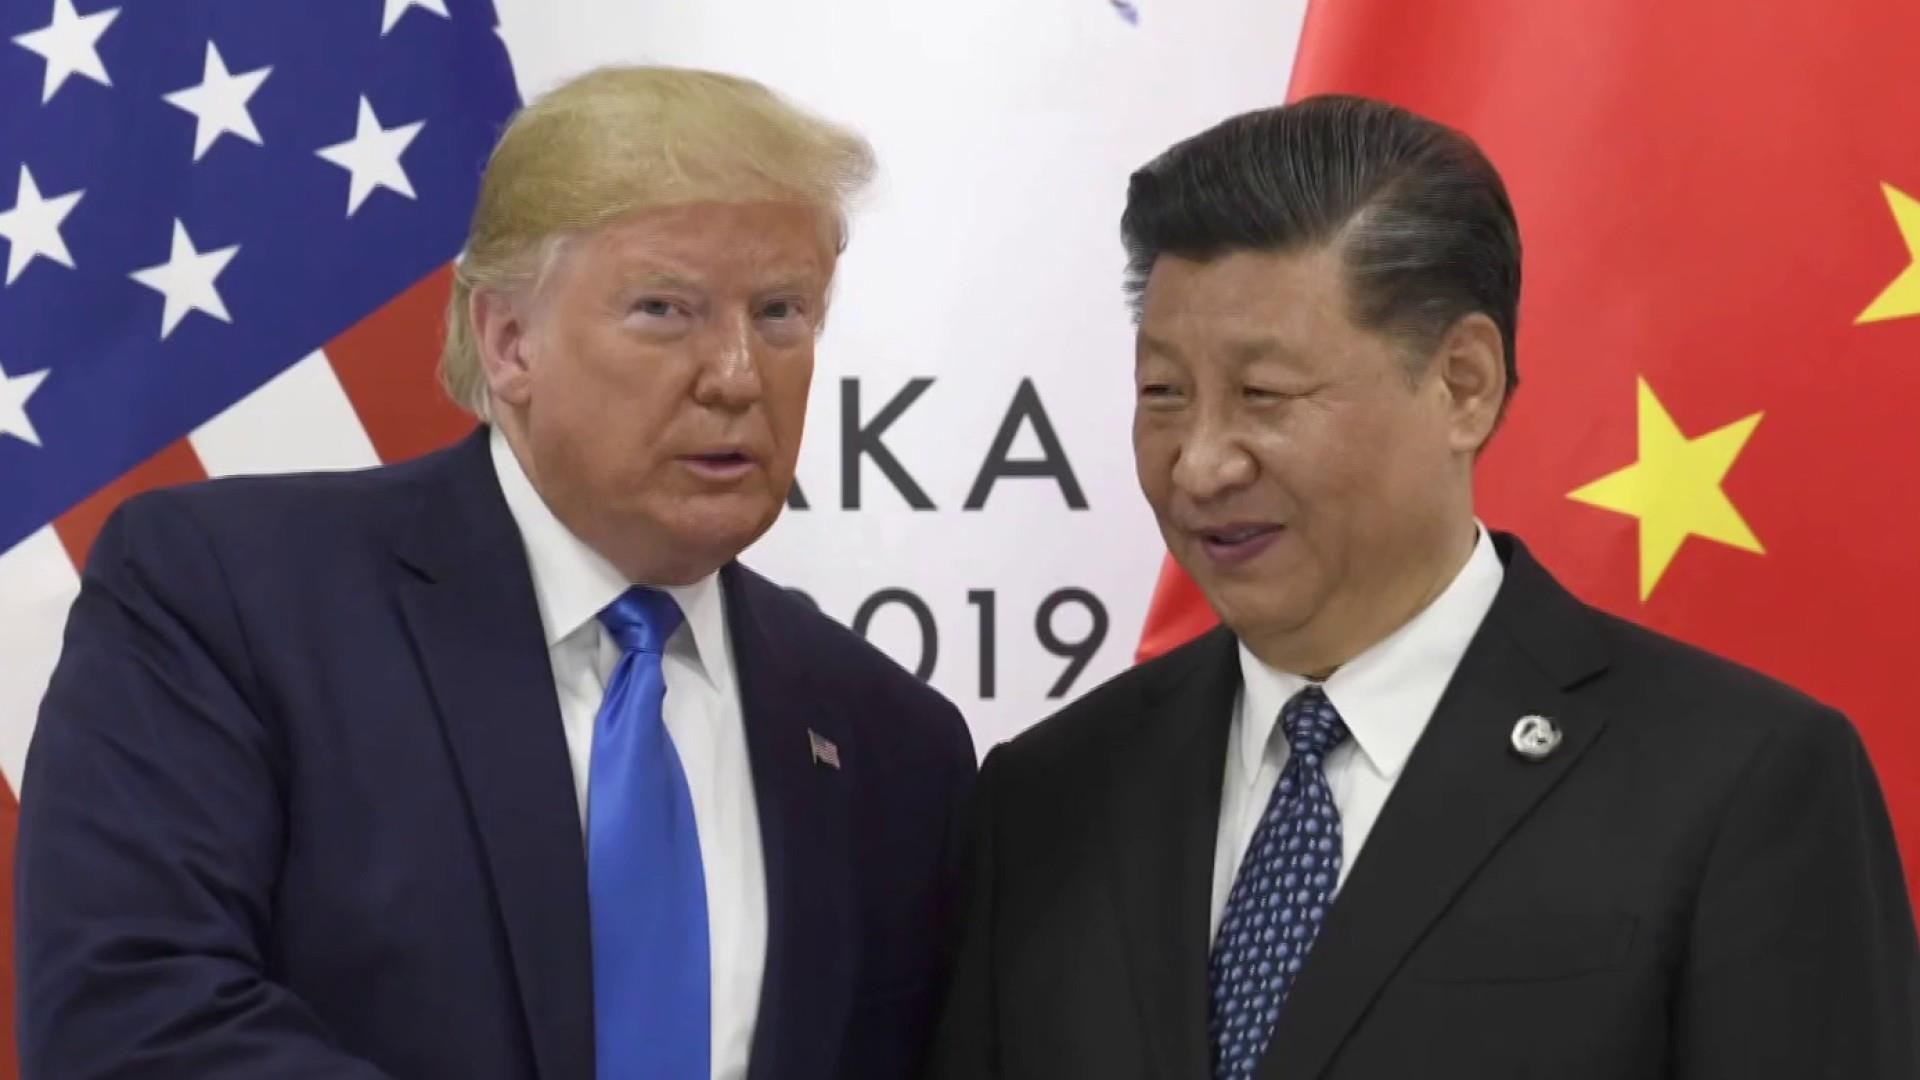 President Trump reportedly promised Xi he'd stay quiet on Hong Kong protests during trade talks